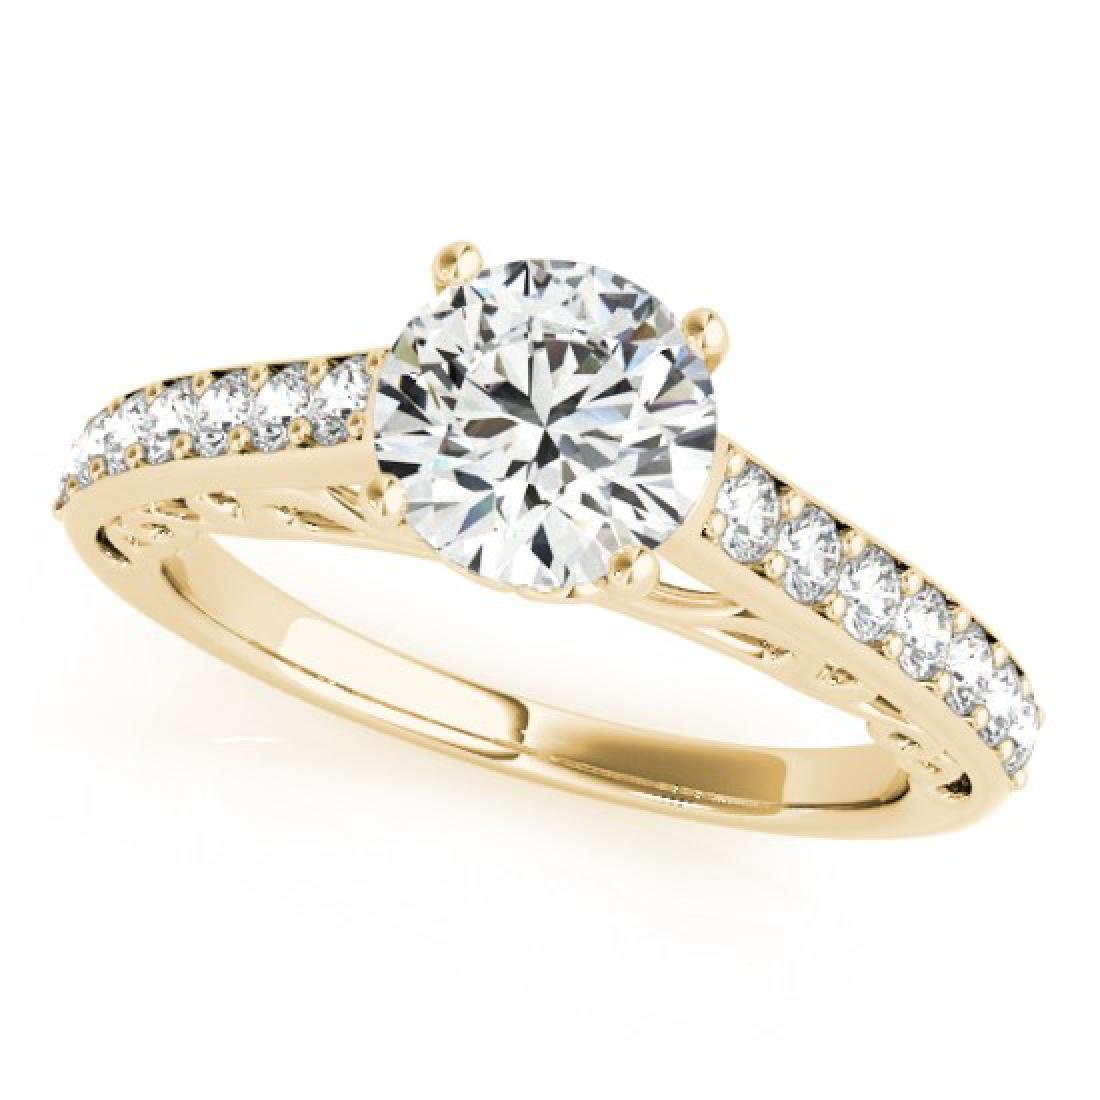 1.4 CTW Certified VS/SI Diamond Solitaire Ring 14K